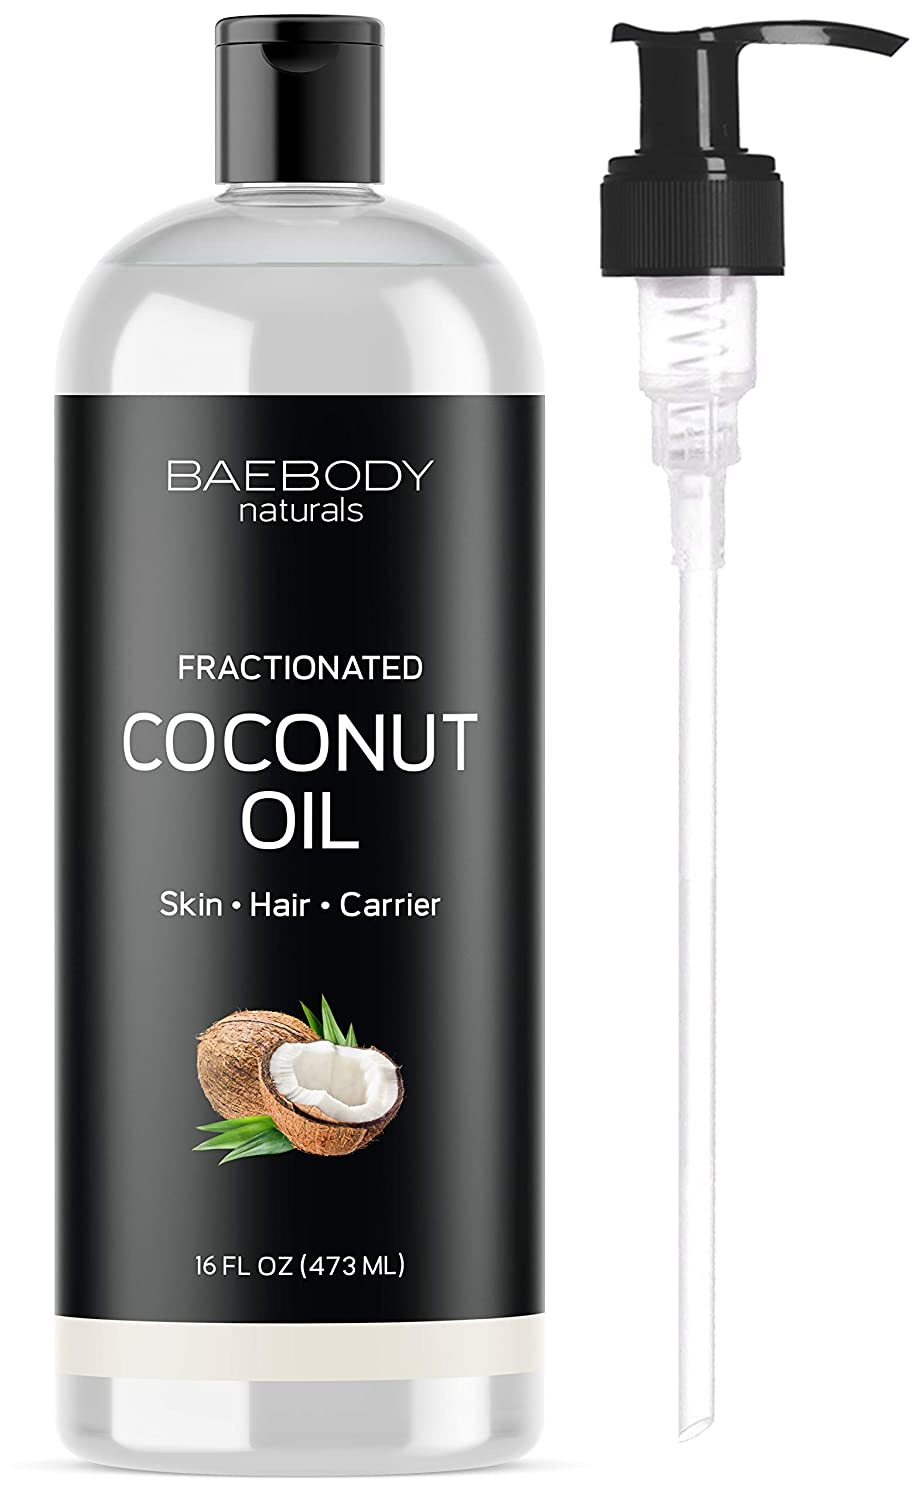 Fractionated Coconut Oil from Baebody Naturals- Moisturizing and Softening Carrier Oil for Face, Skin, Hair, Nails. Premium Carrier Oil for Daily Hydration and Shine. Value Size - Large 16 OZ Baetea